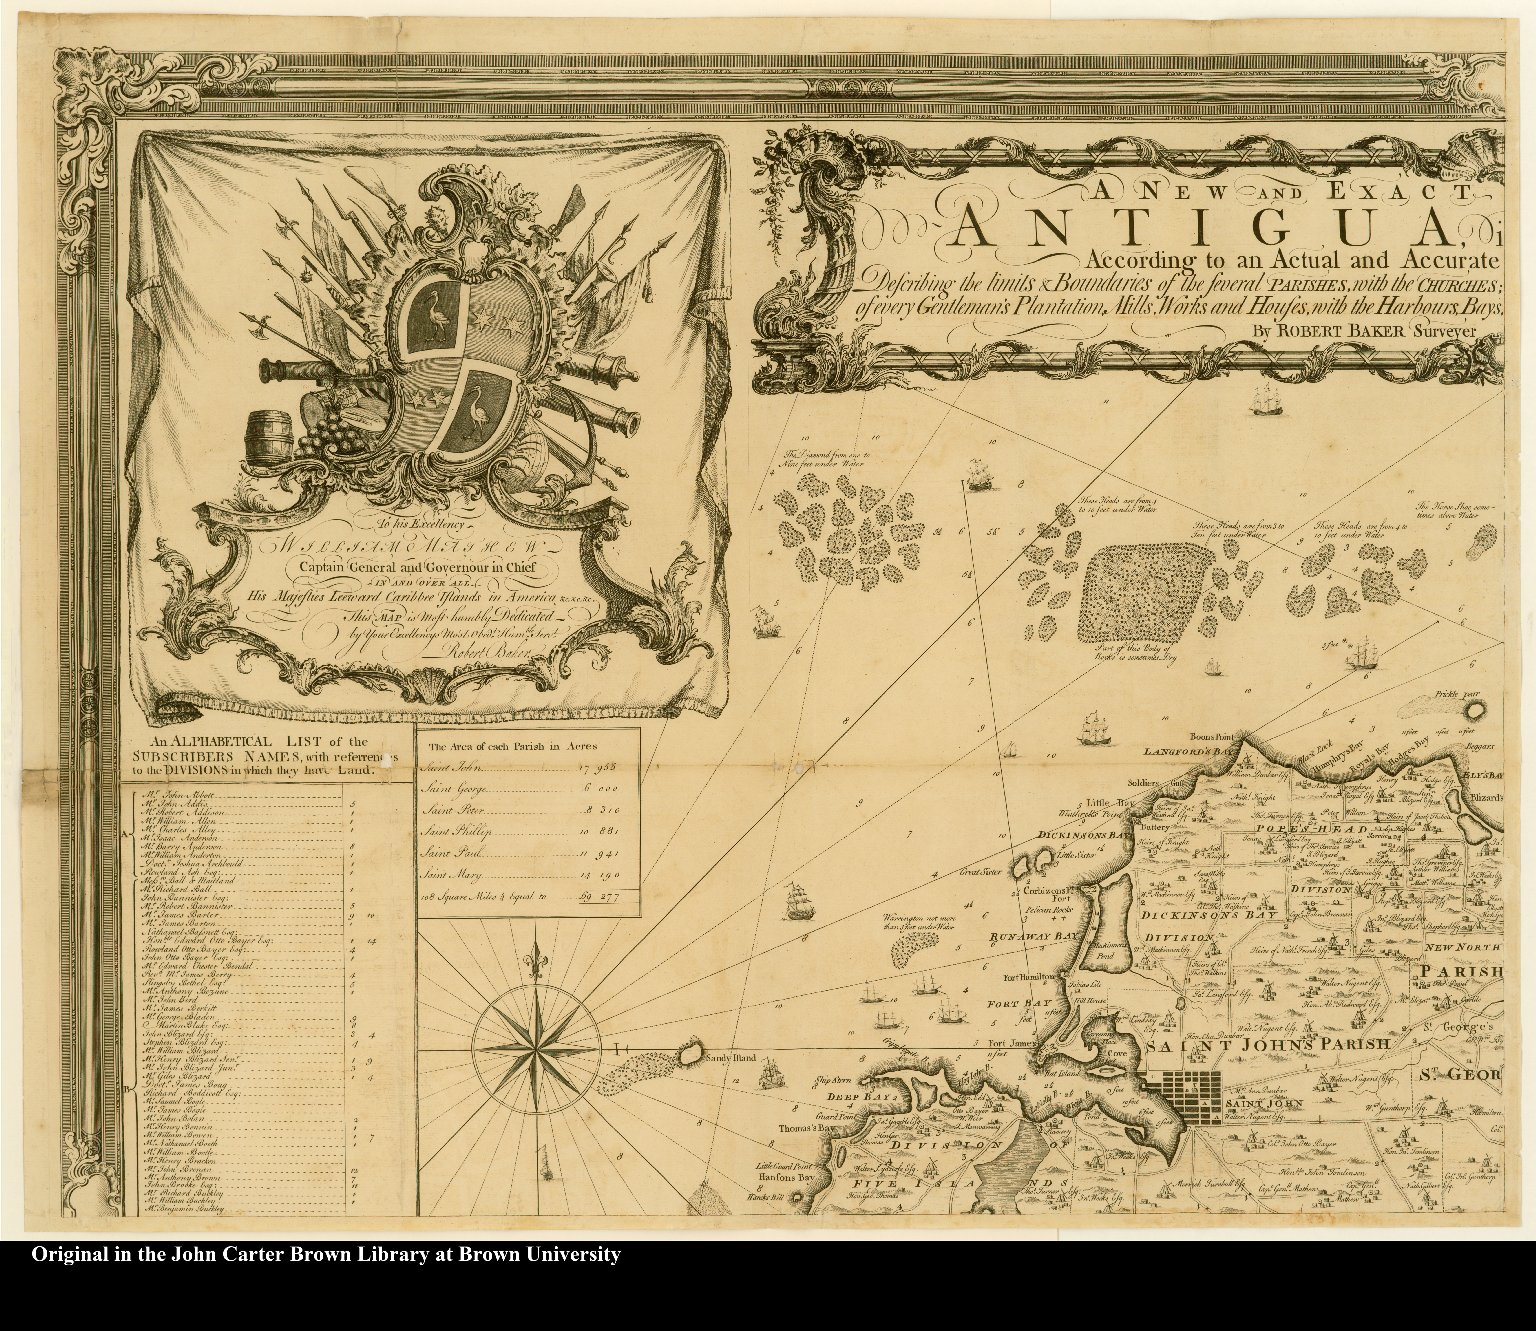 [upper left] [Northwest section of a map of Antigua]